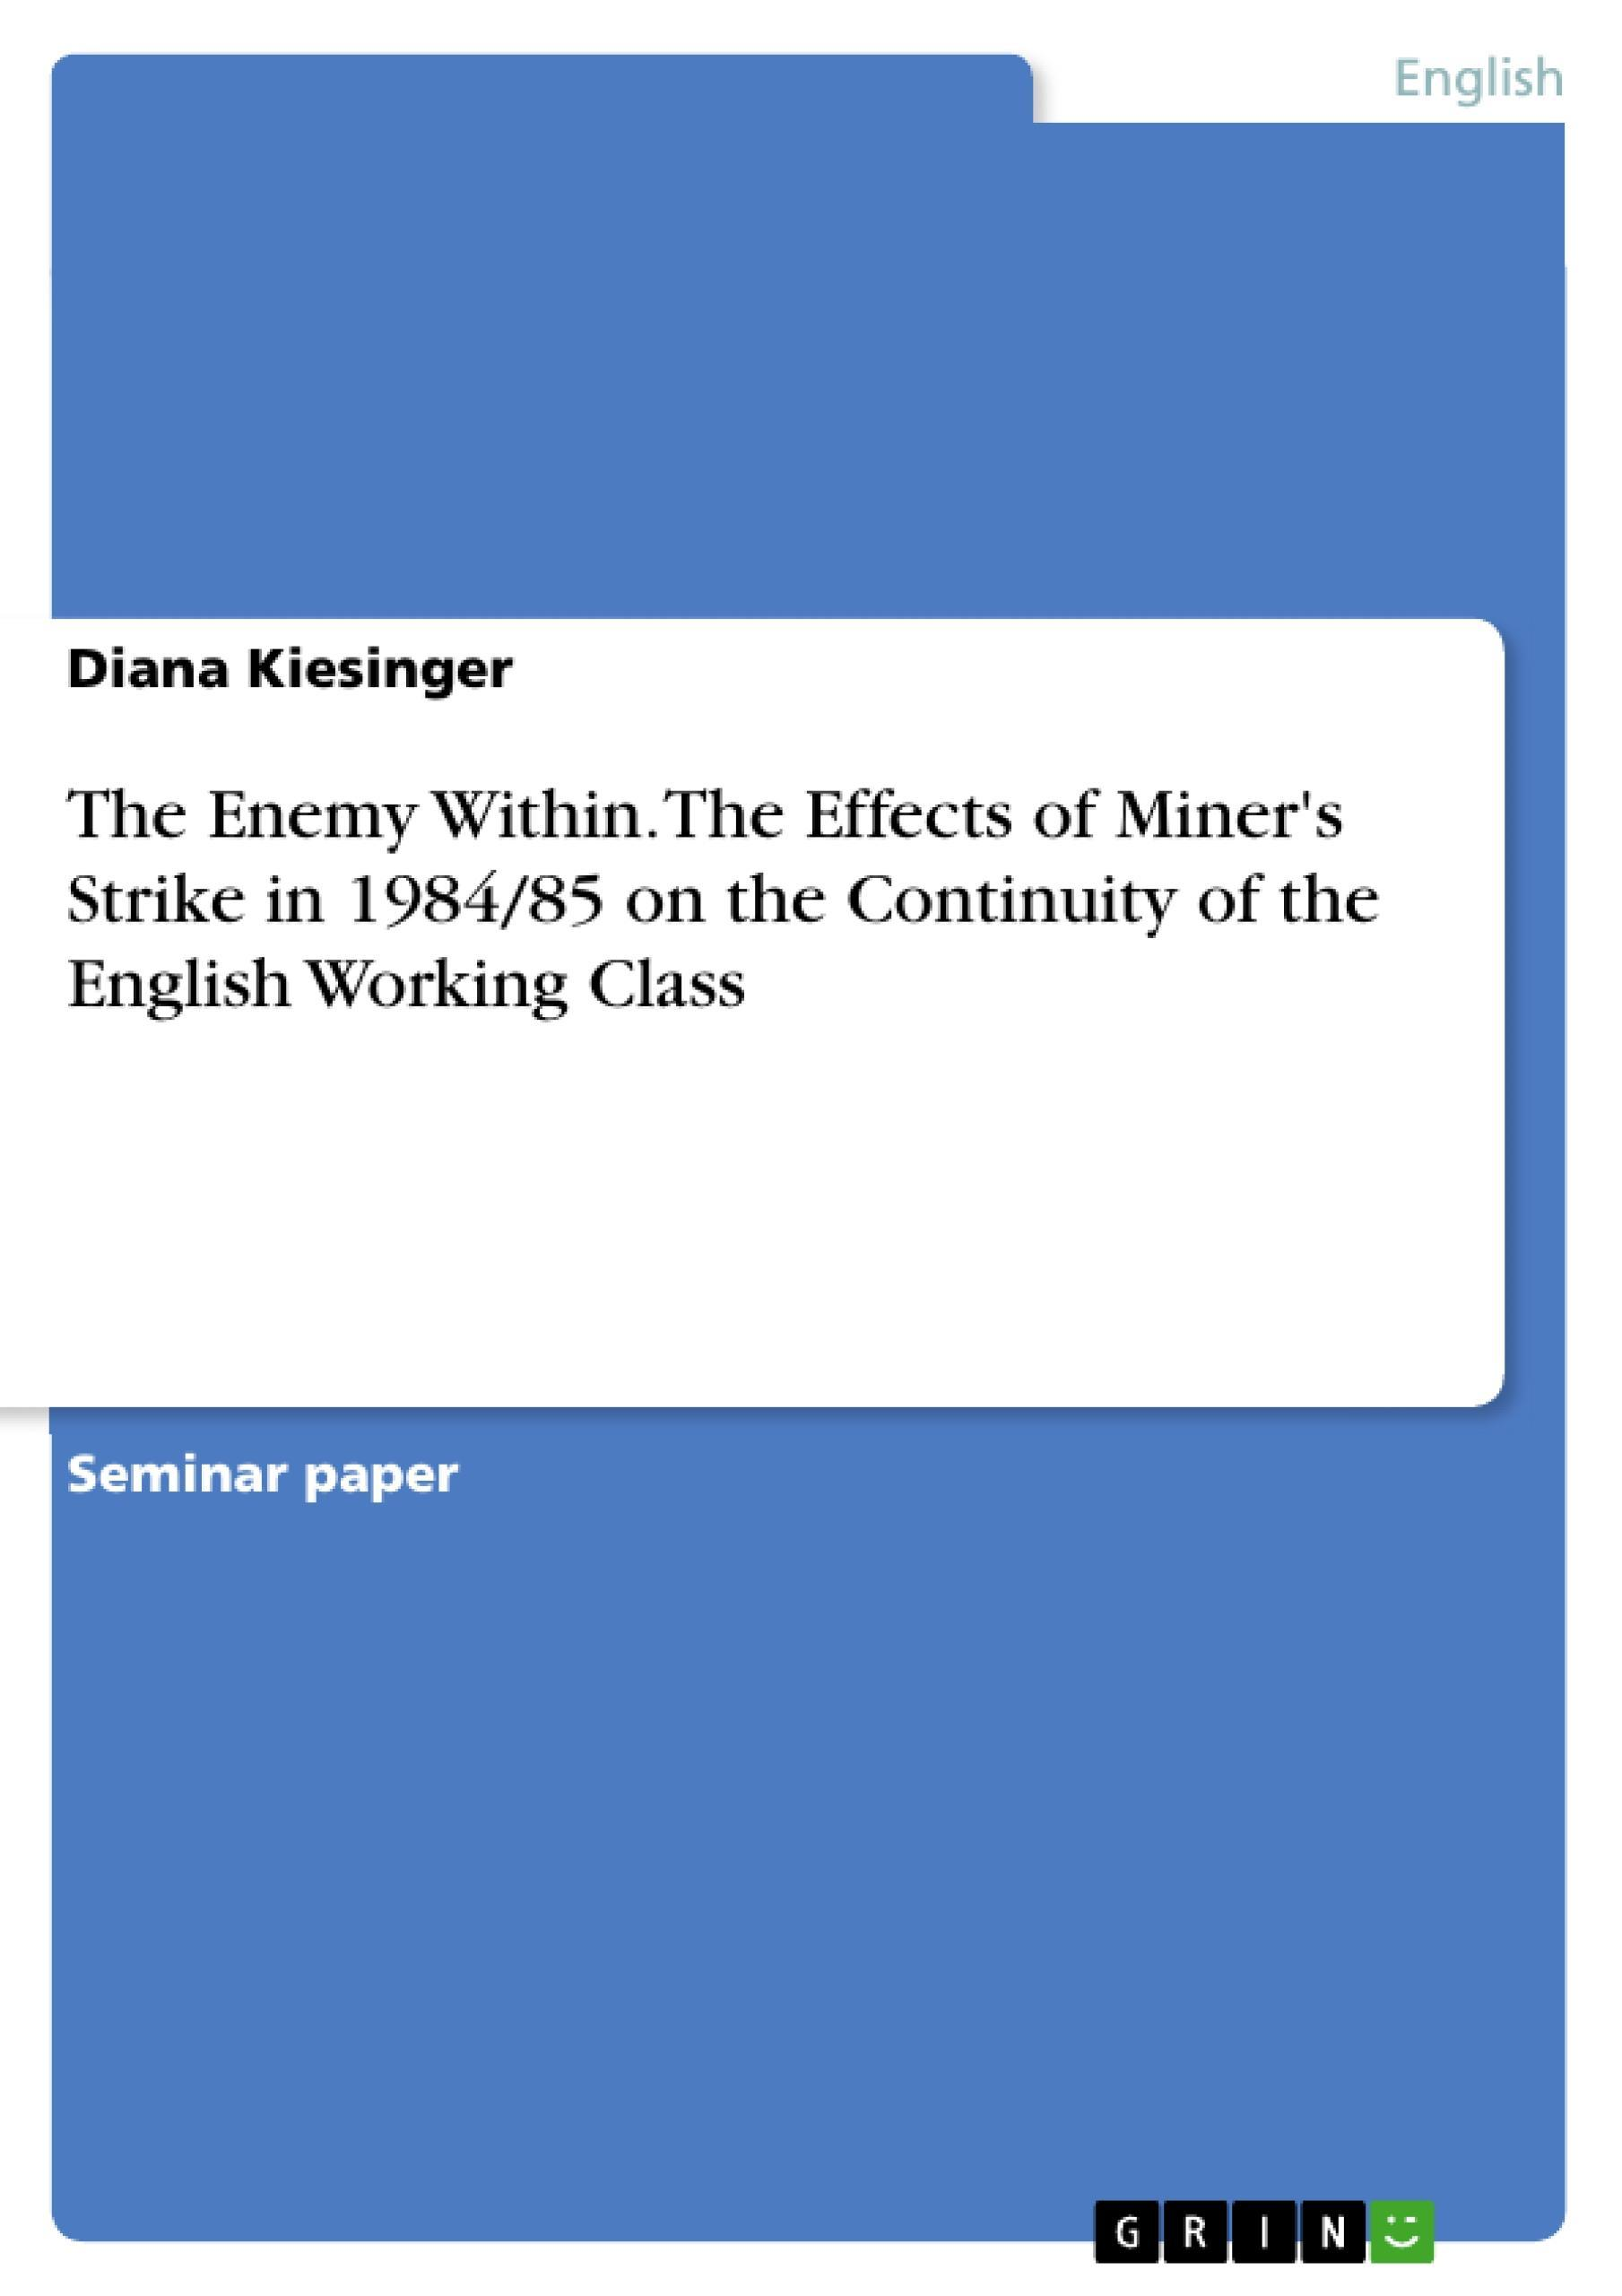 The Enemy Within. The Effects of Miner's Strike in 1984/85 on the Continuit ...